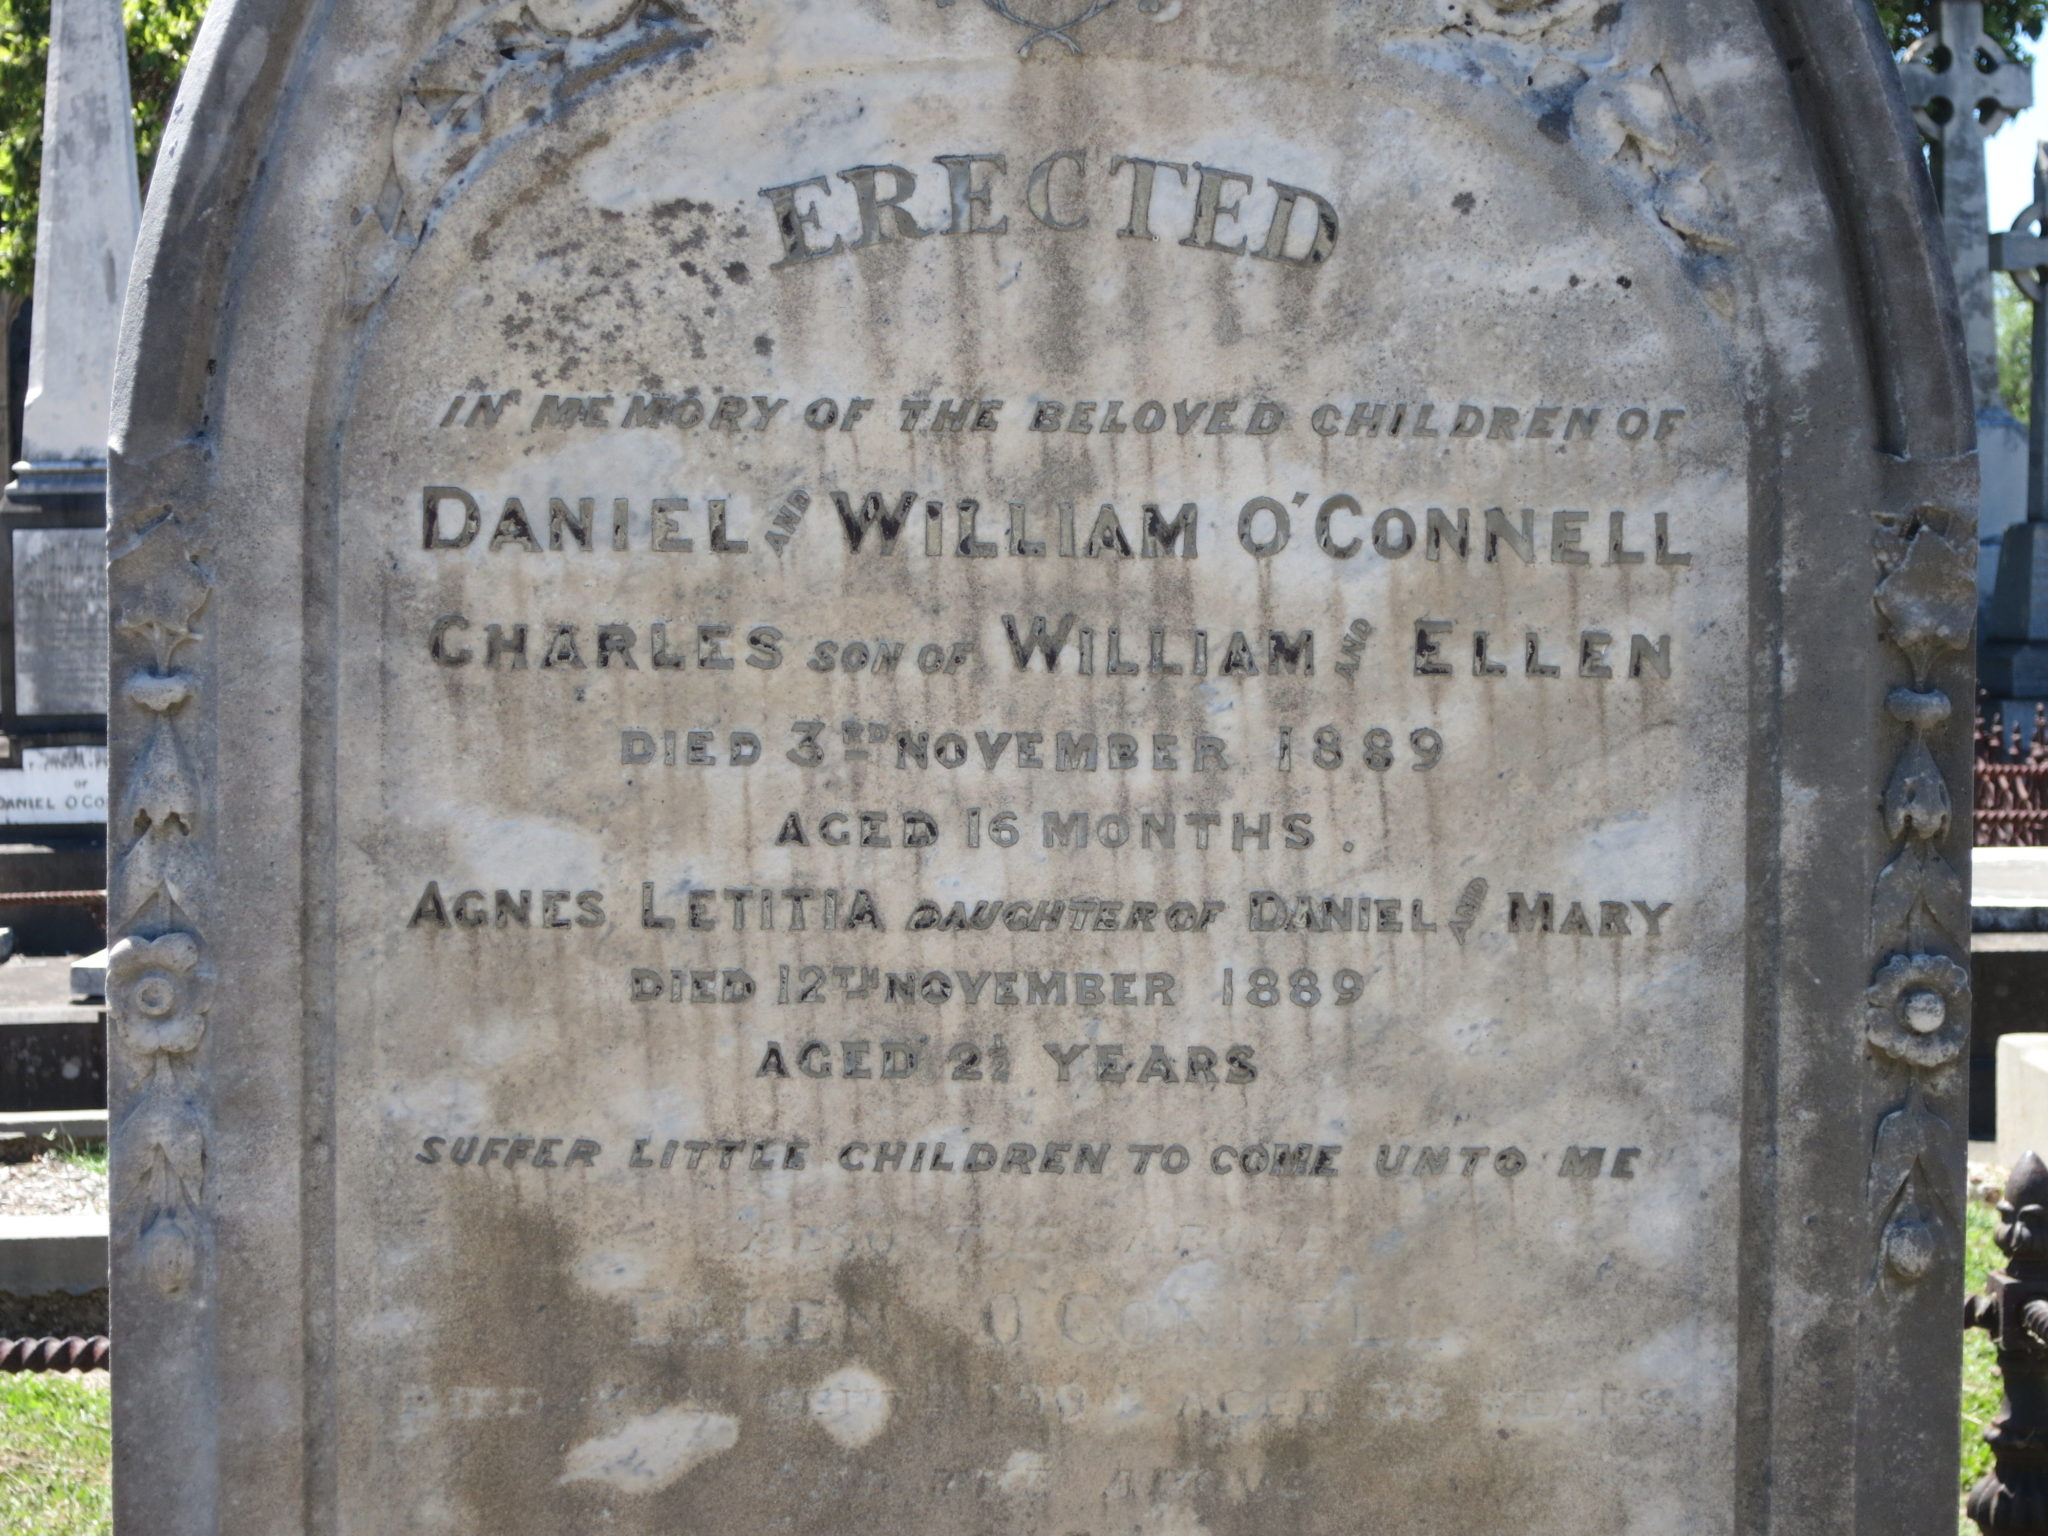 Tracking down my ancestors' graves